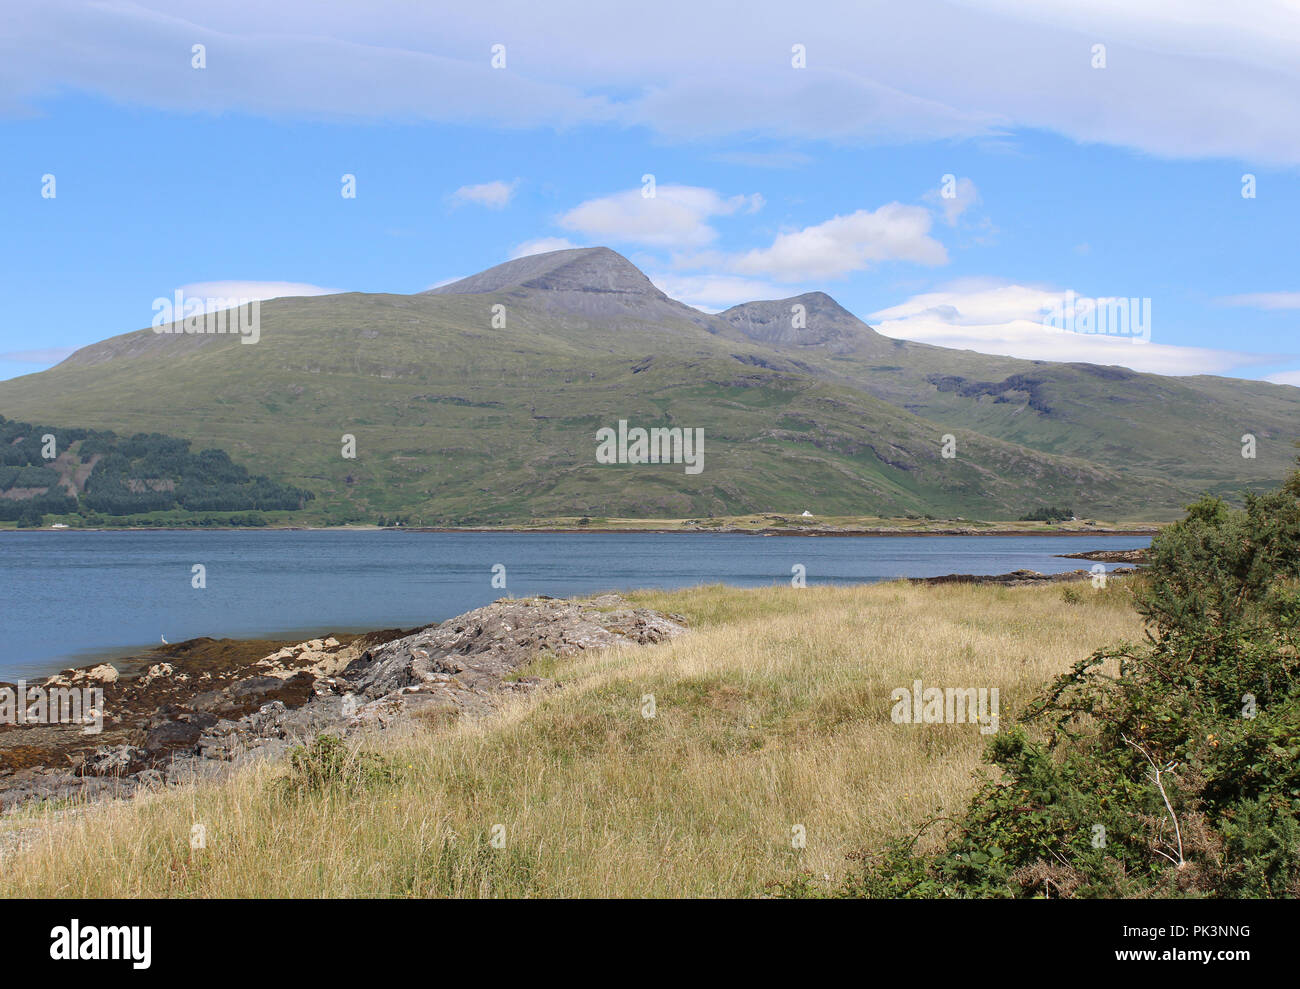 The mountain of Ben More, as viewed from Pennyghael looking across Loch Scridain on the Isle of Mull. - Stock Image